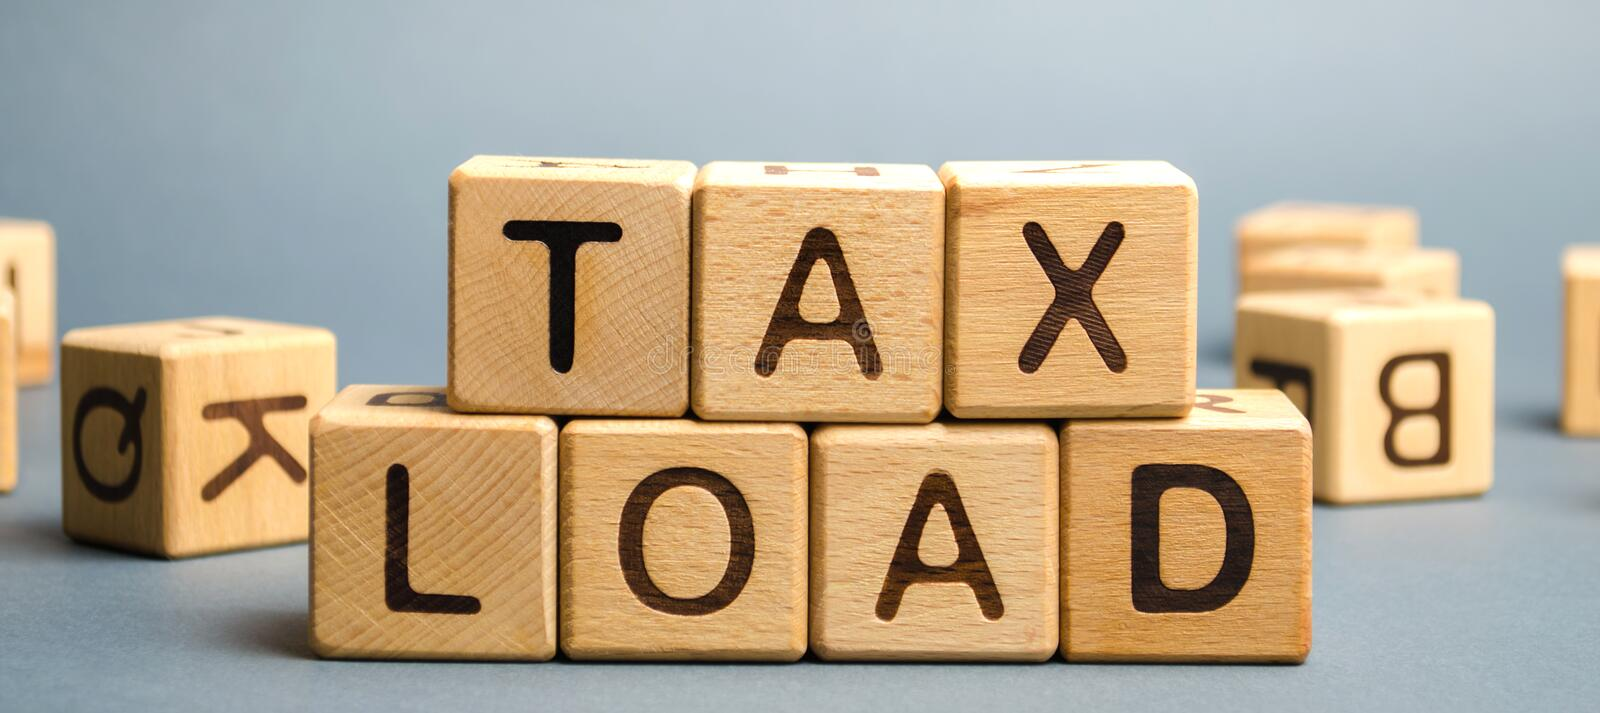 Wooden blocks with the word Tax load and randomly scattered cubes. Measure of the tax burden imposed by government. Taxation. Taxes. Business and finance stock photos